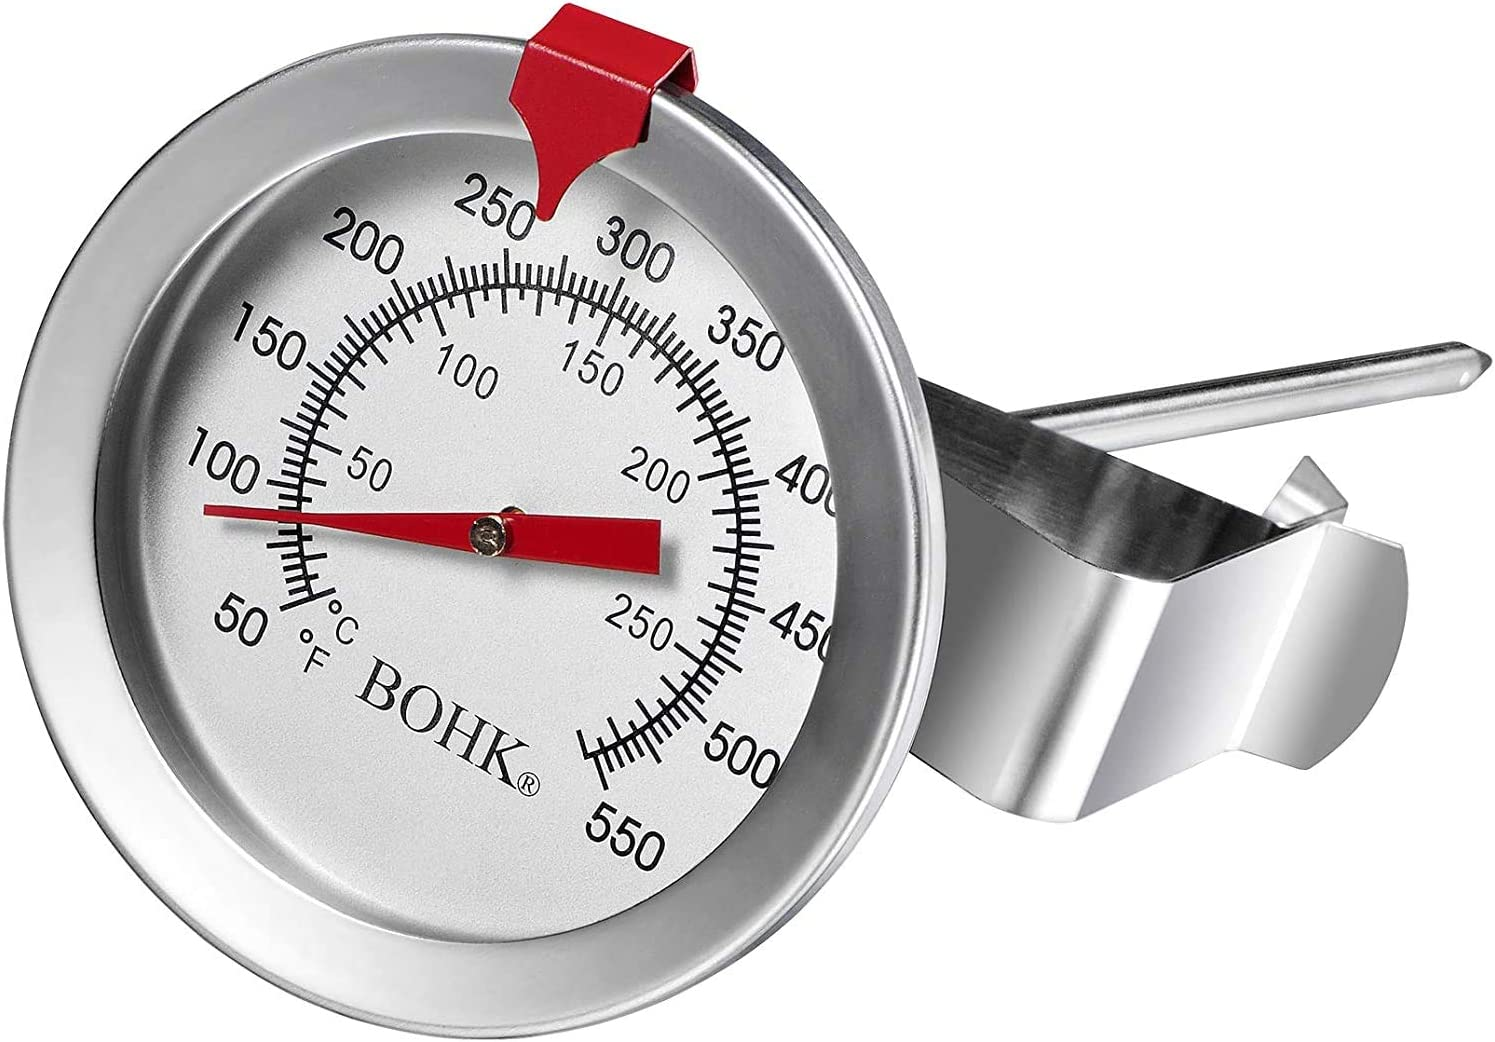 BOHK Handy Deep Fry Meat Turkey Thermometer with 2 Inch Dial Red Indicator Stainless Steel for BBQ Grill Pot Pan Kettle 50℉-550℉ (1, 8 Inch)